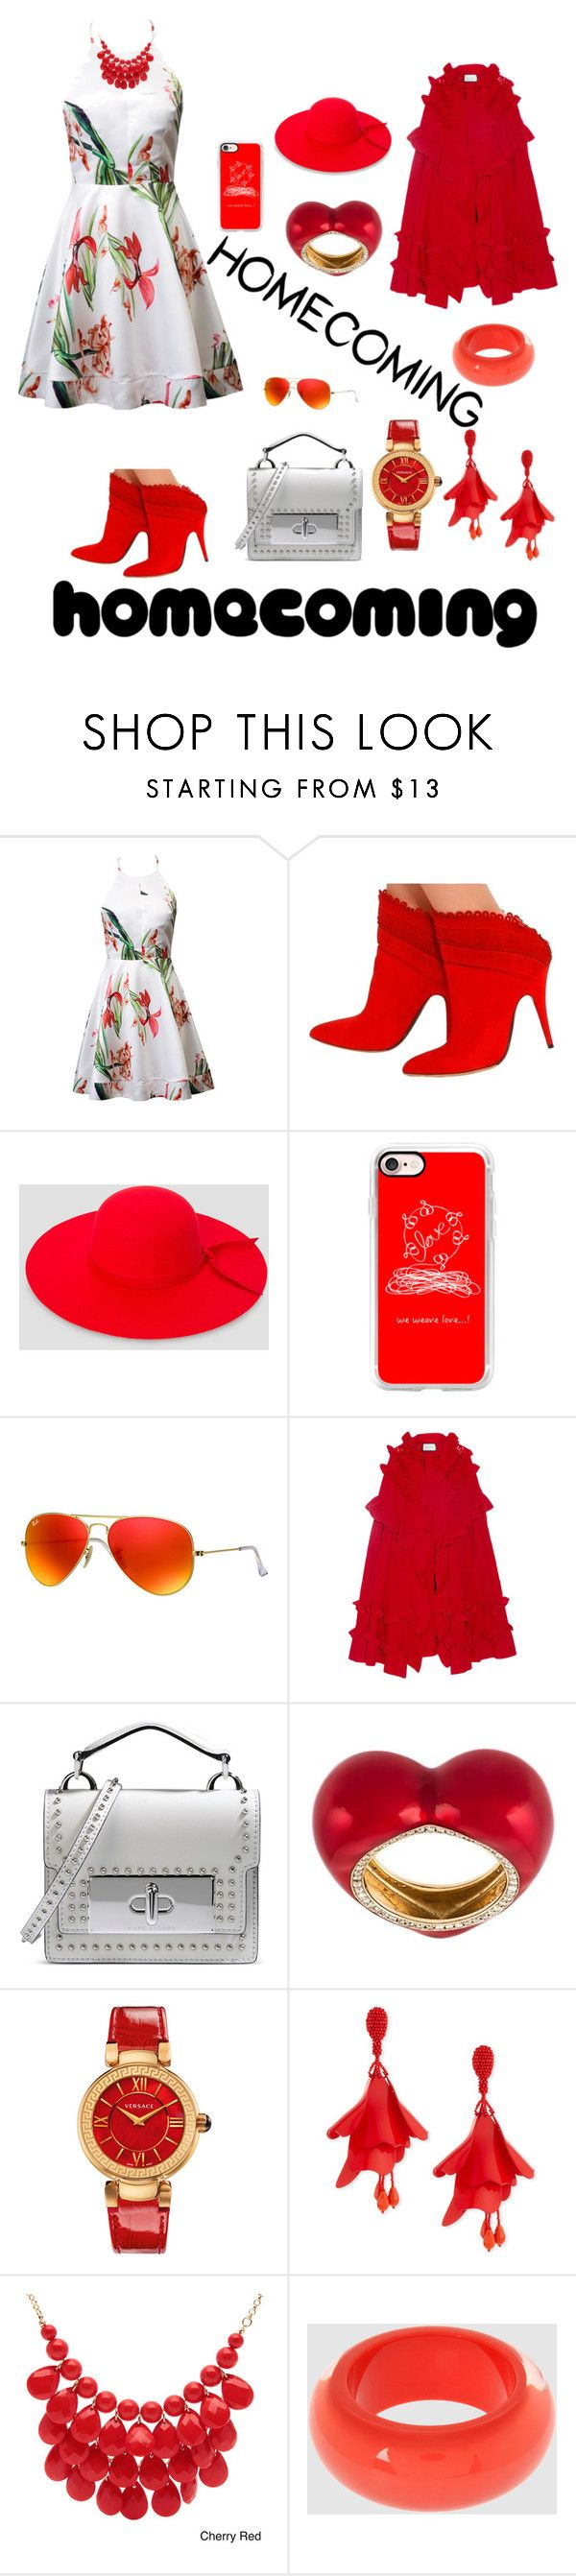 """regreso a casa"" by osiris-rojas ❤ liked on Polyvore featuring Tabitha Simmons, Ashley Stewart, Casetify, Ray-Ban, Gucci, Marc Jacobs, Alison Lou, Versace, Oscar de la Renta and Alexa Starr"